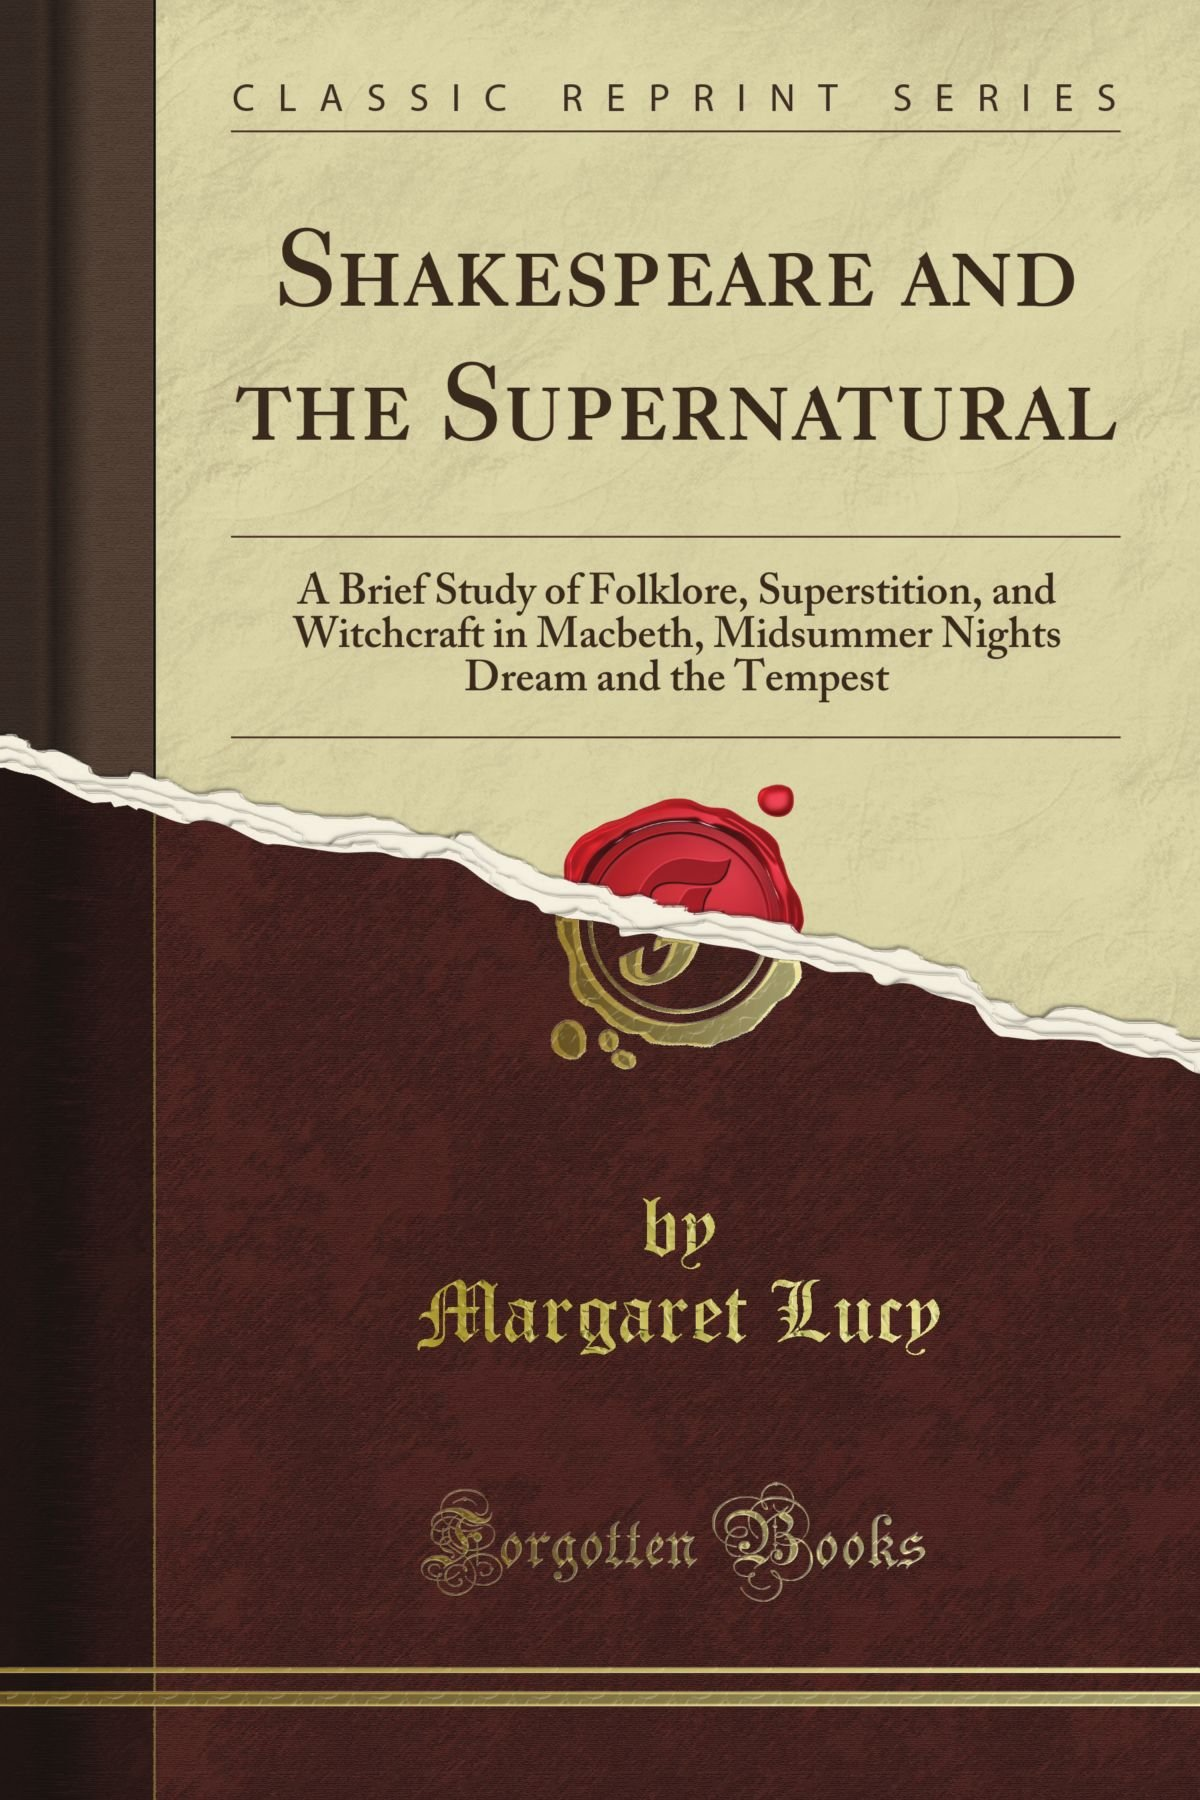 shakespeare and the supernatural a brief study of folklore shakespeare and the supernatural a brief study of folklore superstition and witchcraft in macbeth midsummer night s dream and the tempest classic